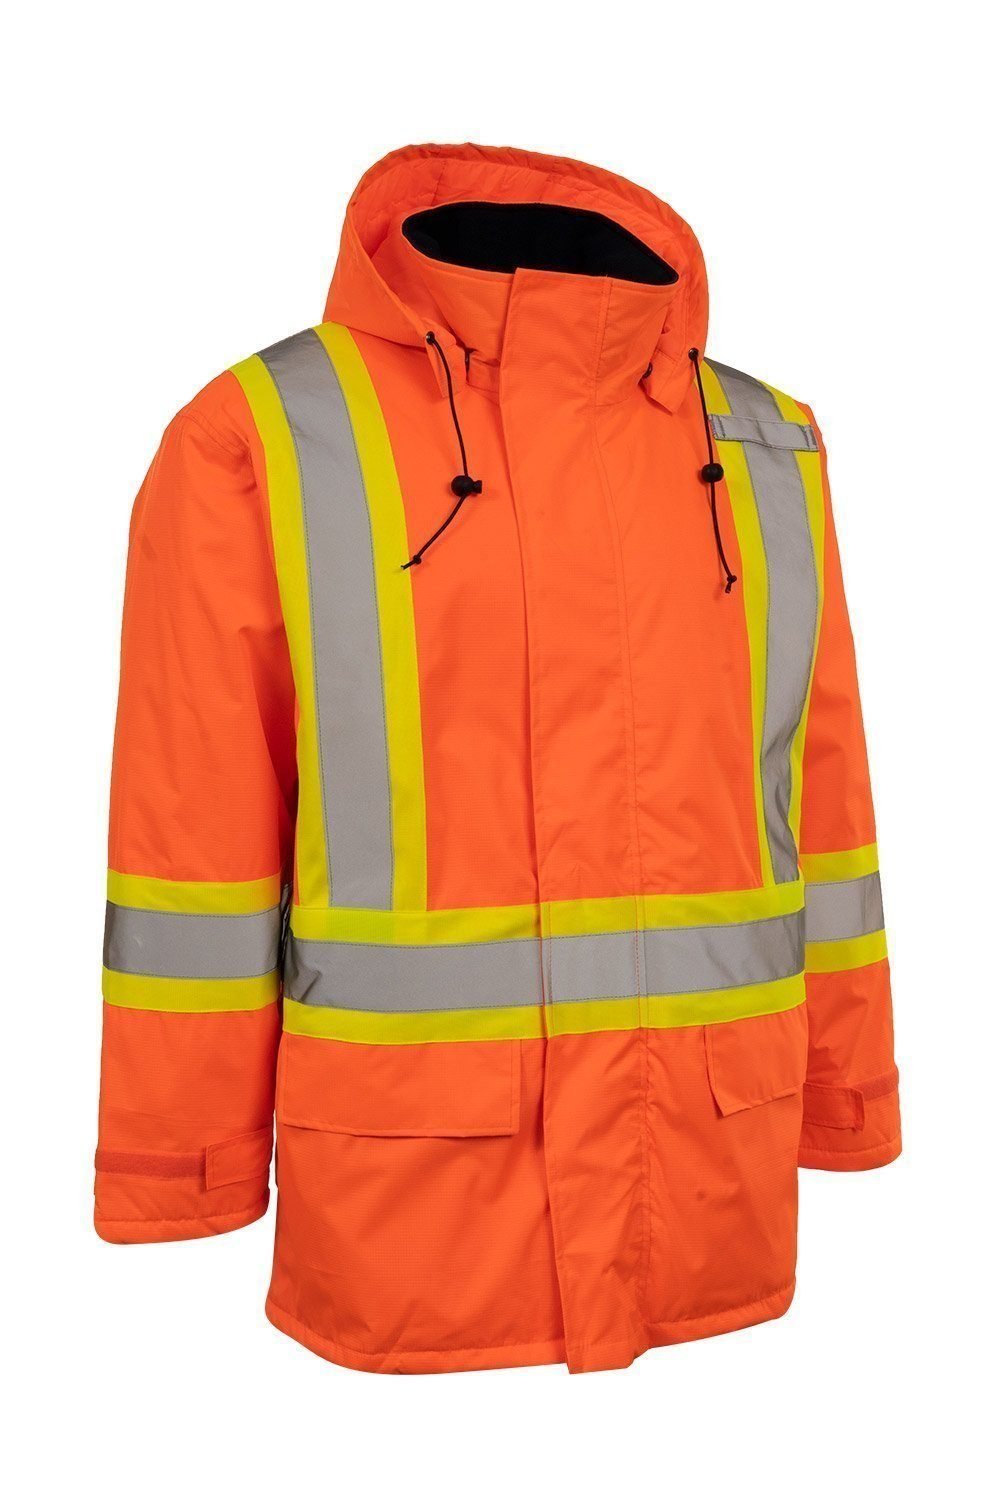 Forcefield - Insulated Safety Parka - 024-EN405ROR - Orange